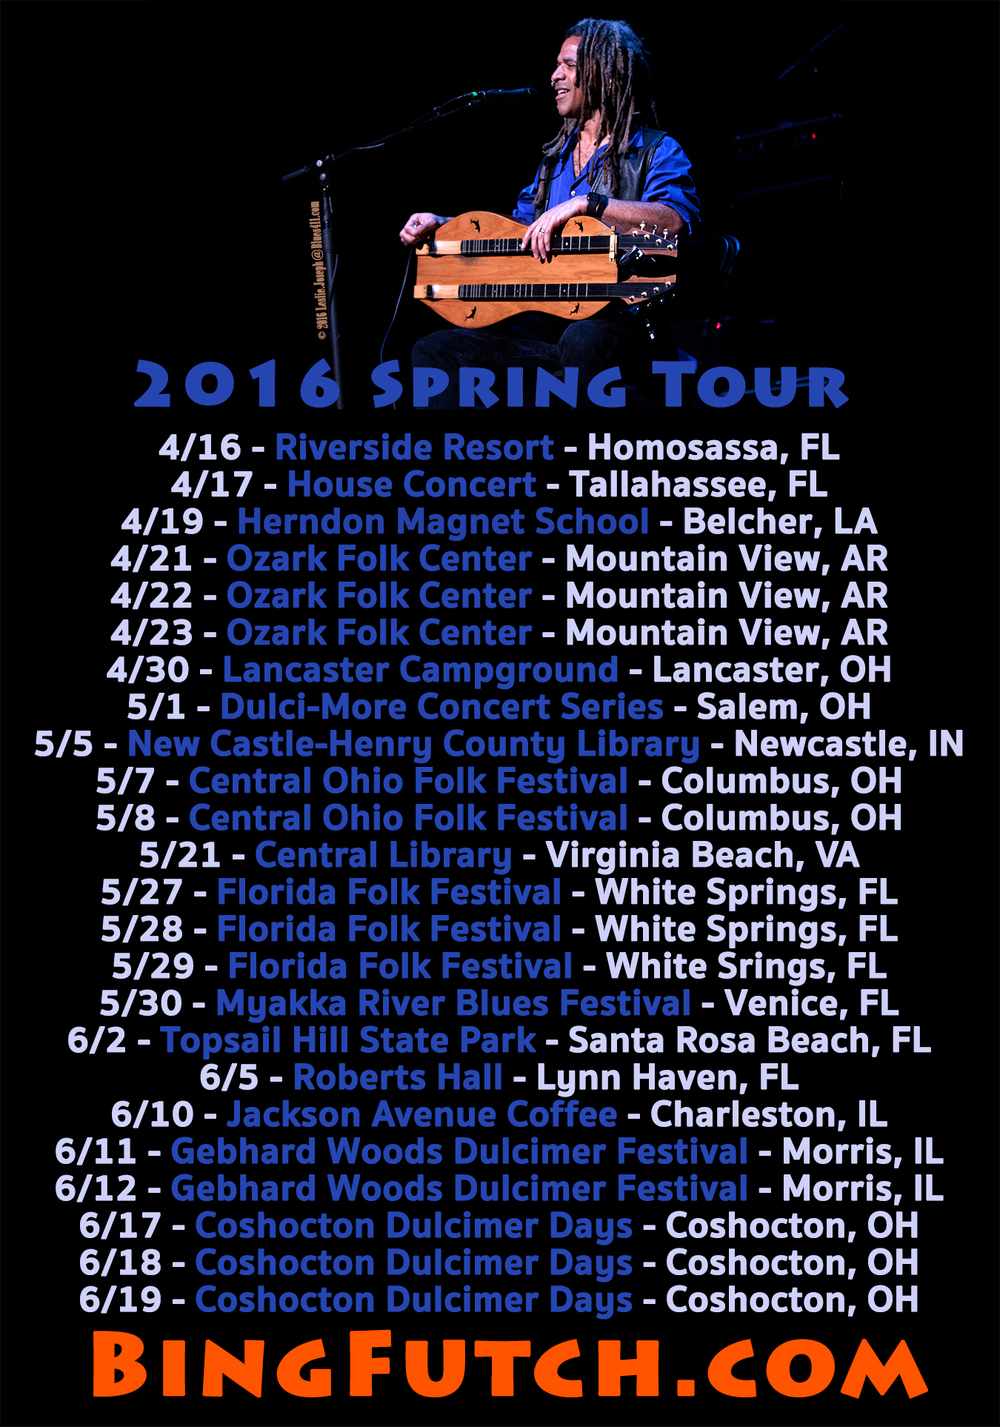 Bing displays his trusty Folkcraft Instruments double-dulcimer to the crowd at The Orpheum Theater above a listing of spring tour dates.